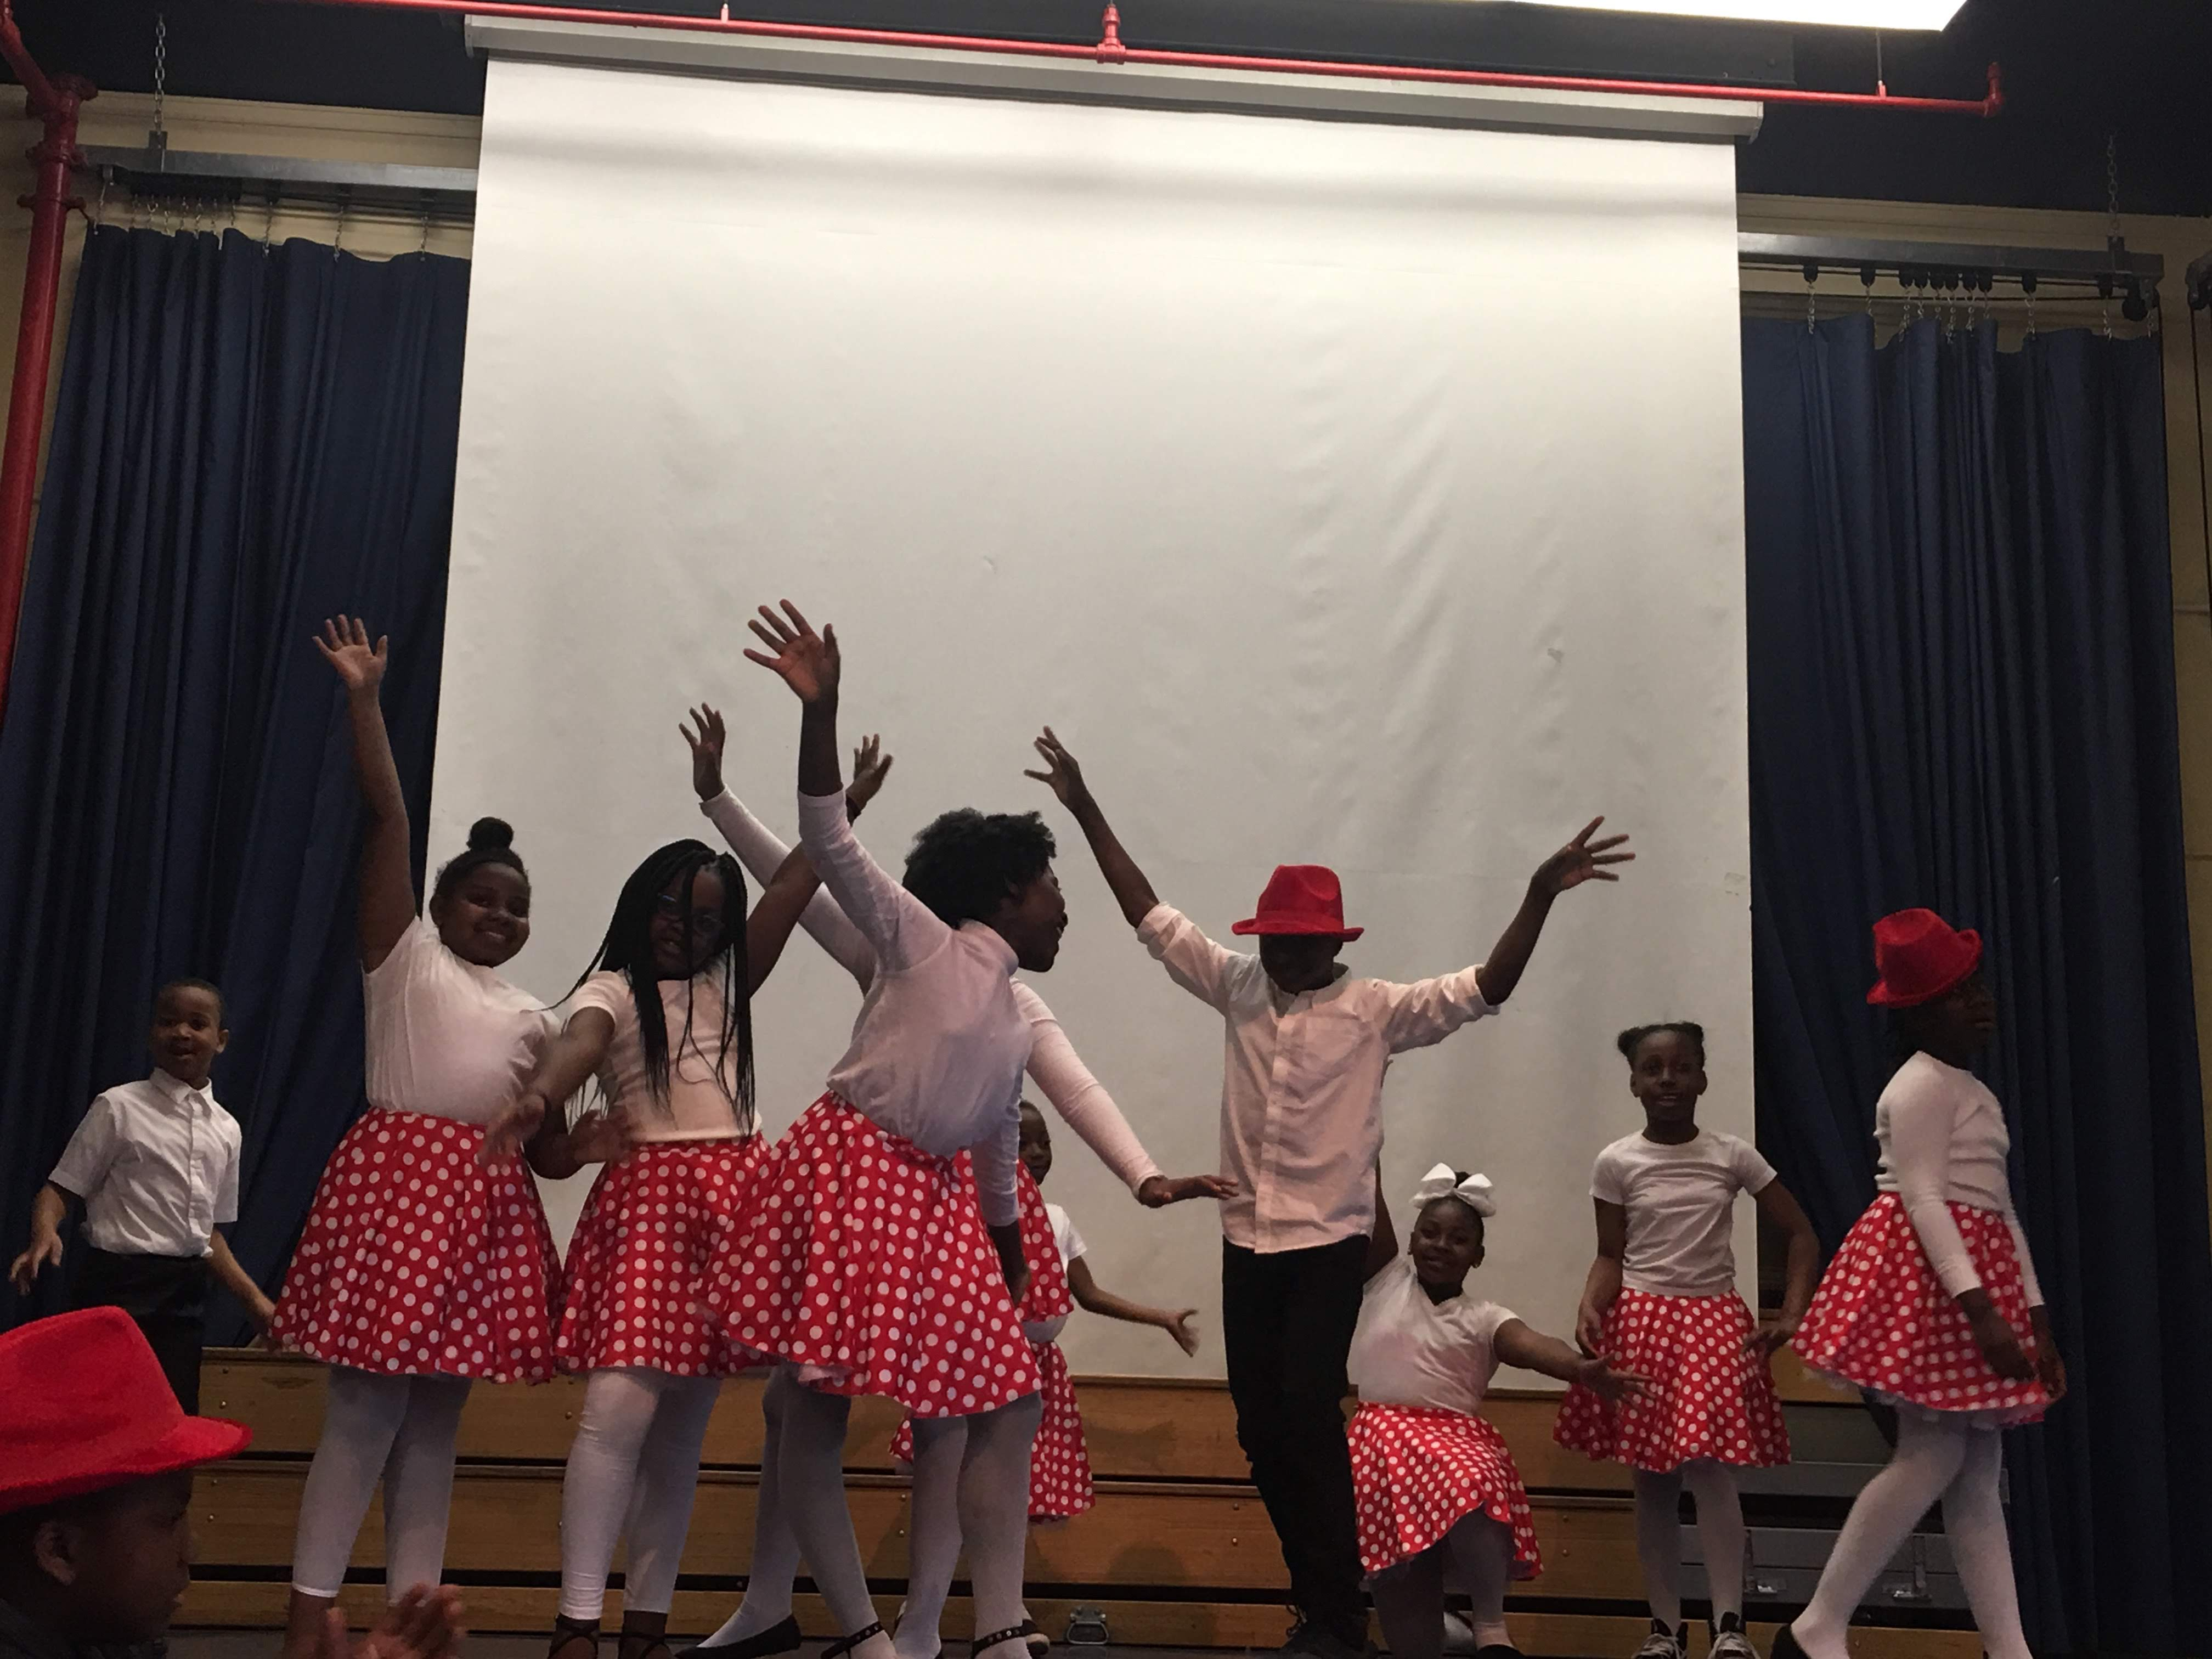 3rd, 4th, and 5th graders dance exuberantly on stage